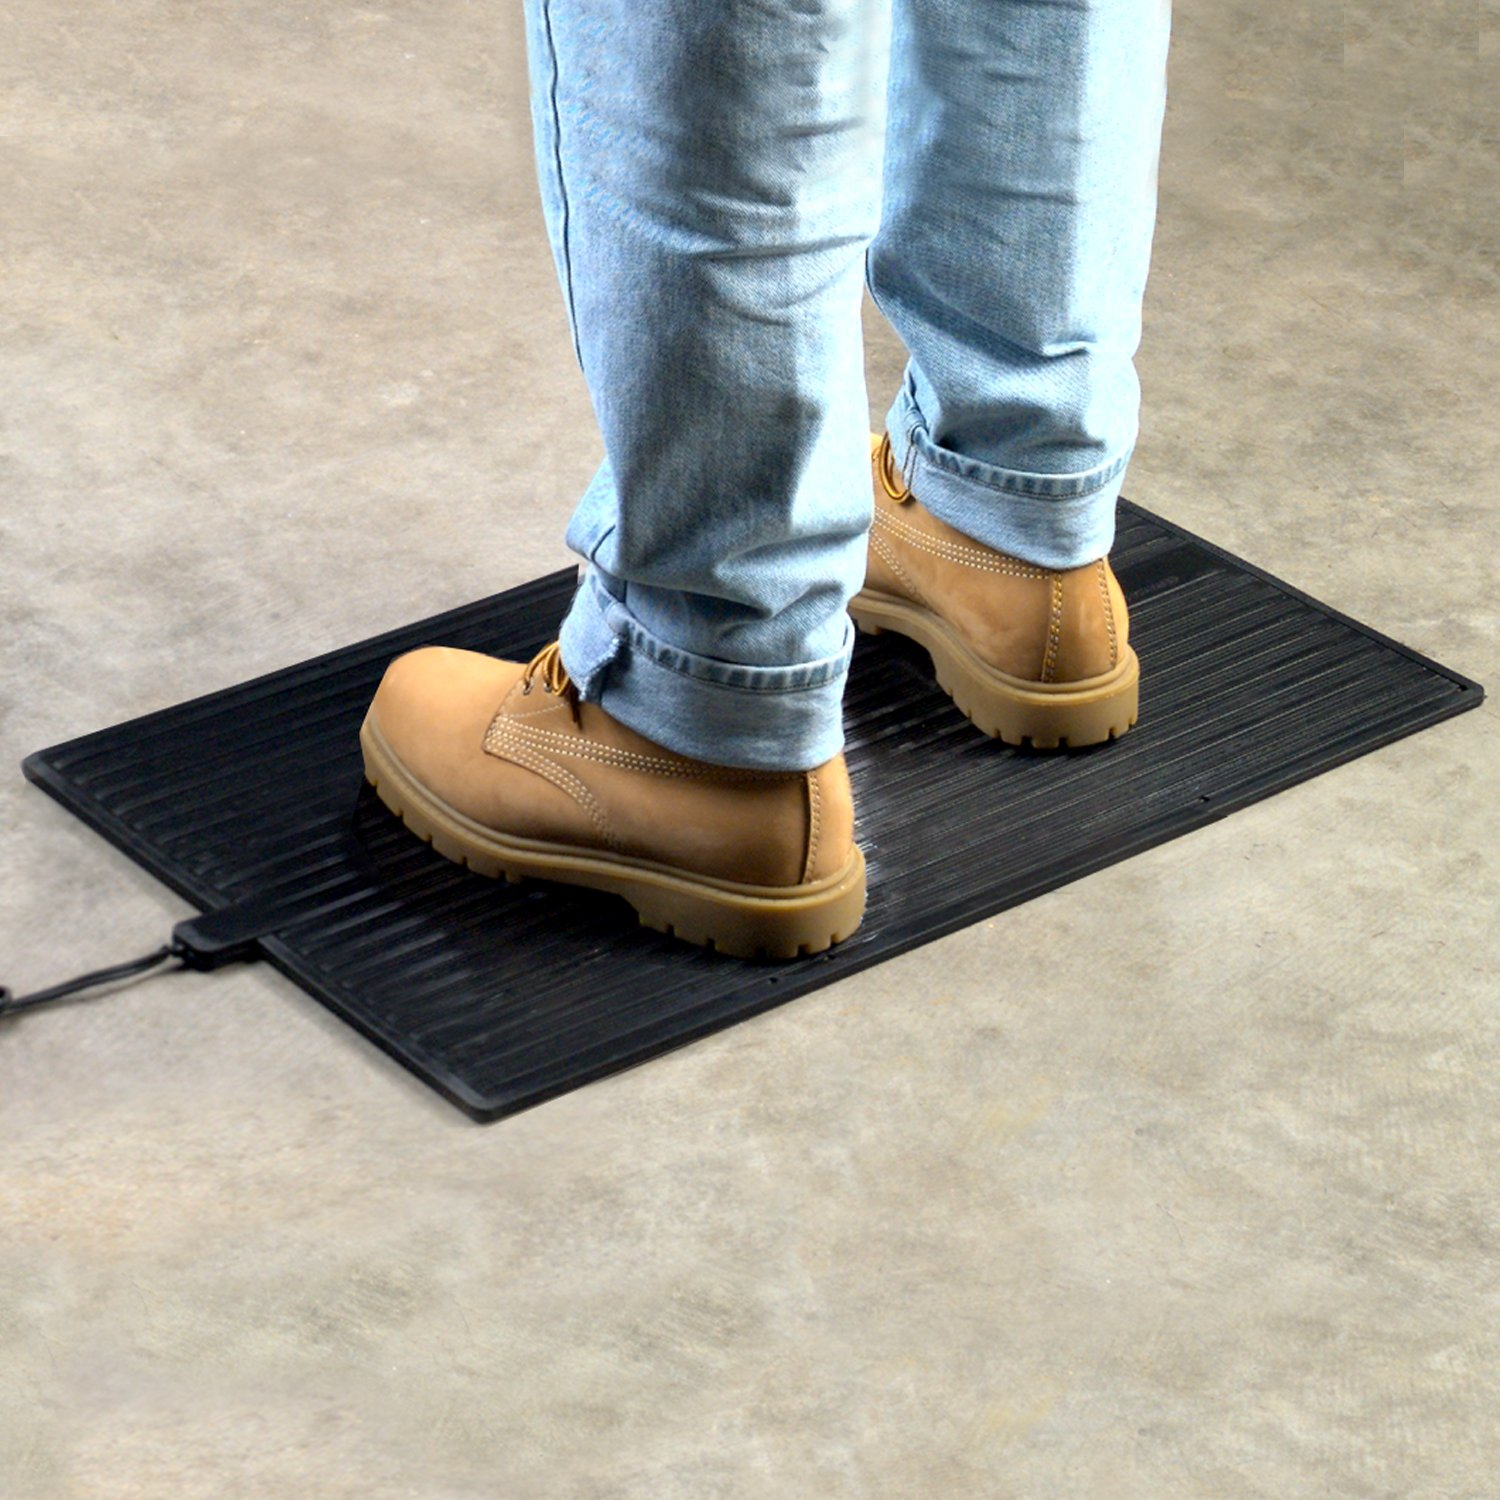 Rubber floor mats for house - Amazon Com Cozy Products Fw Foot Warmer Heated Foot Warming Mat Rubber Design Home Kitchen